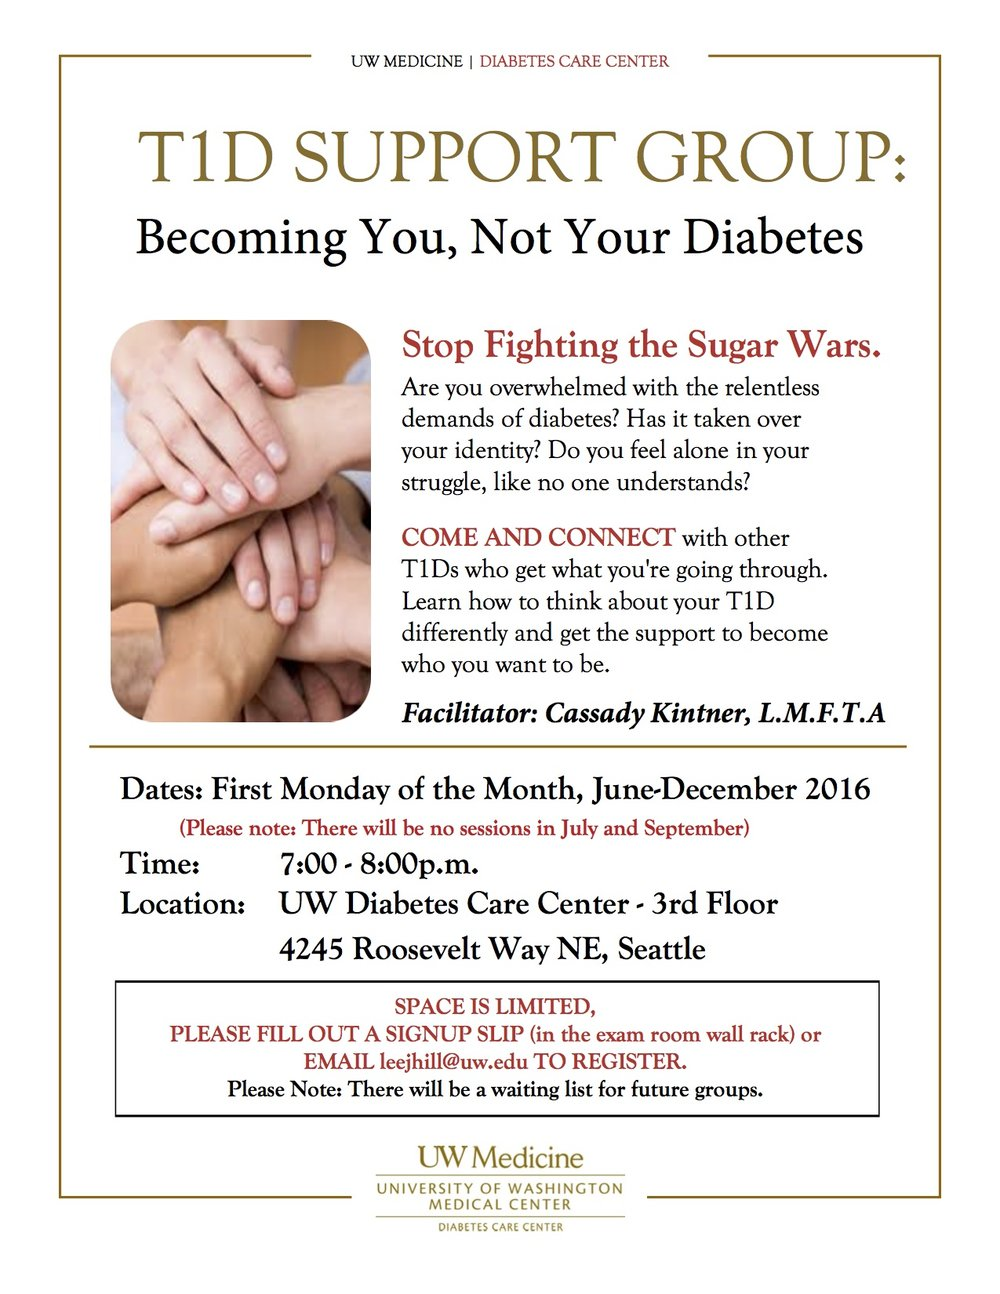 *Only for patients of UW Diabetes Care Center.